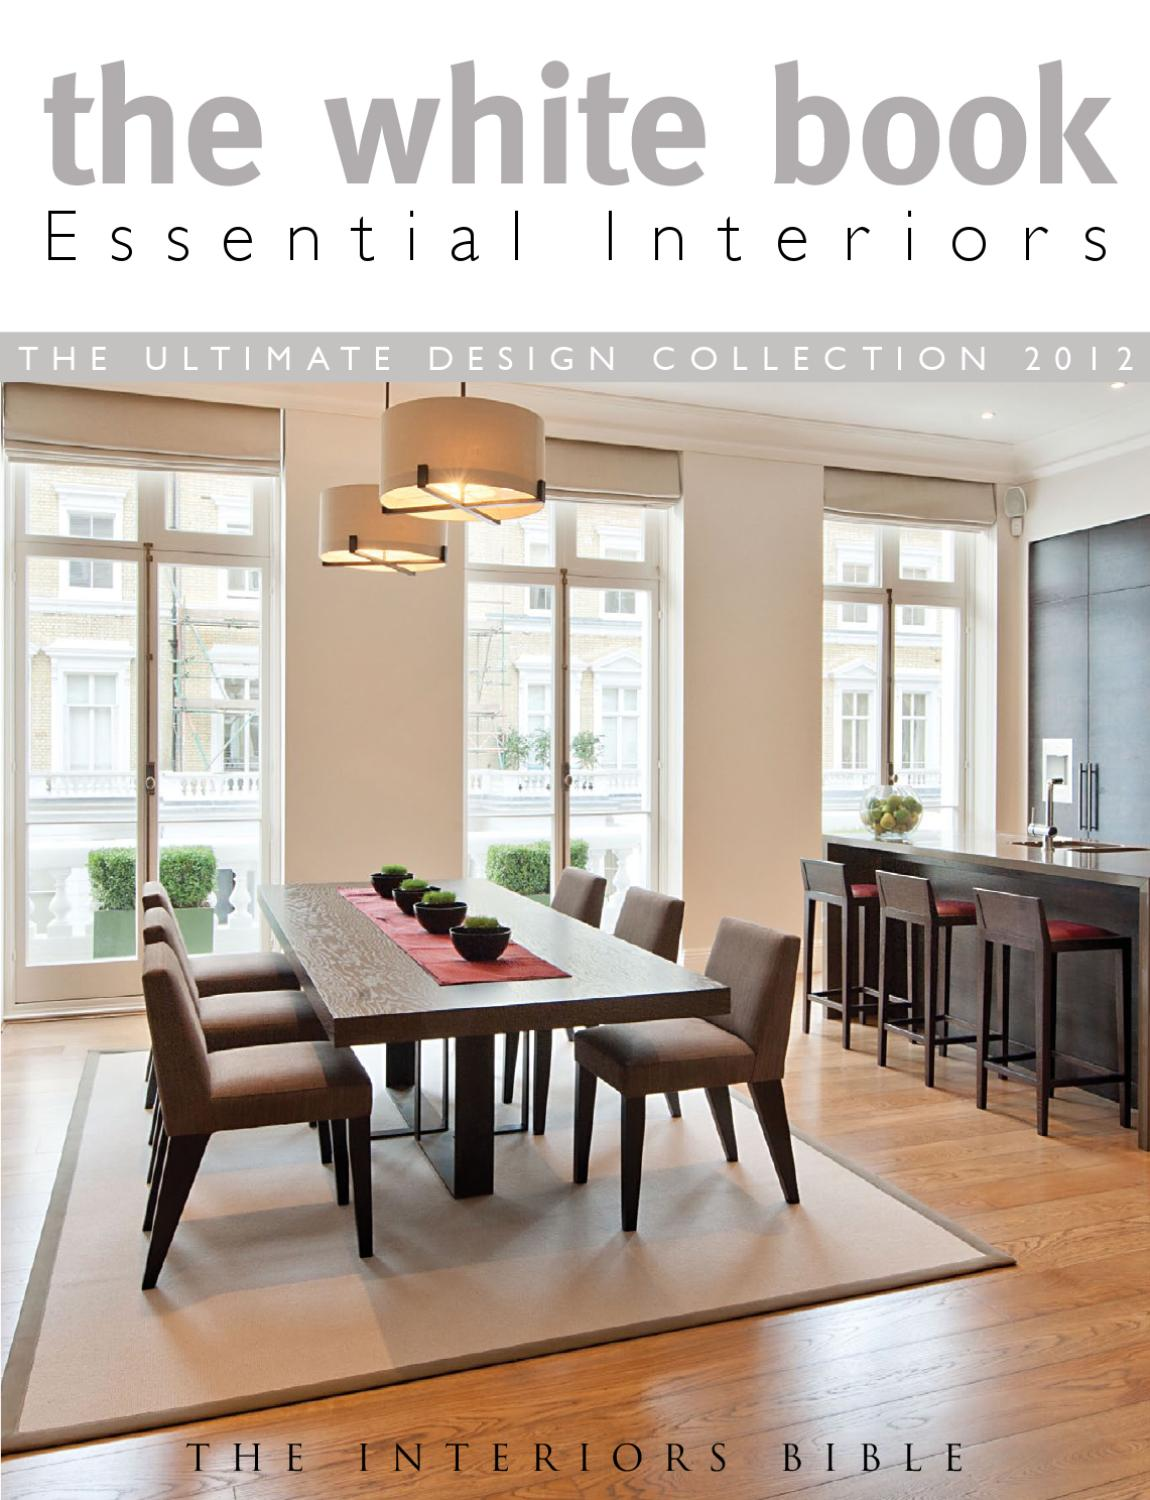 The White Book Essential Interiors By Montague Publications Group